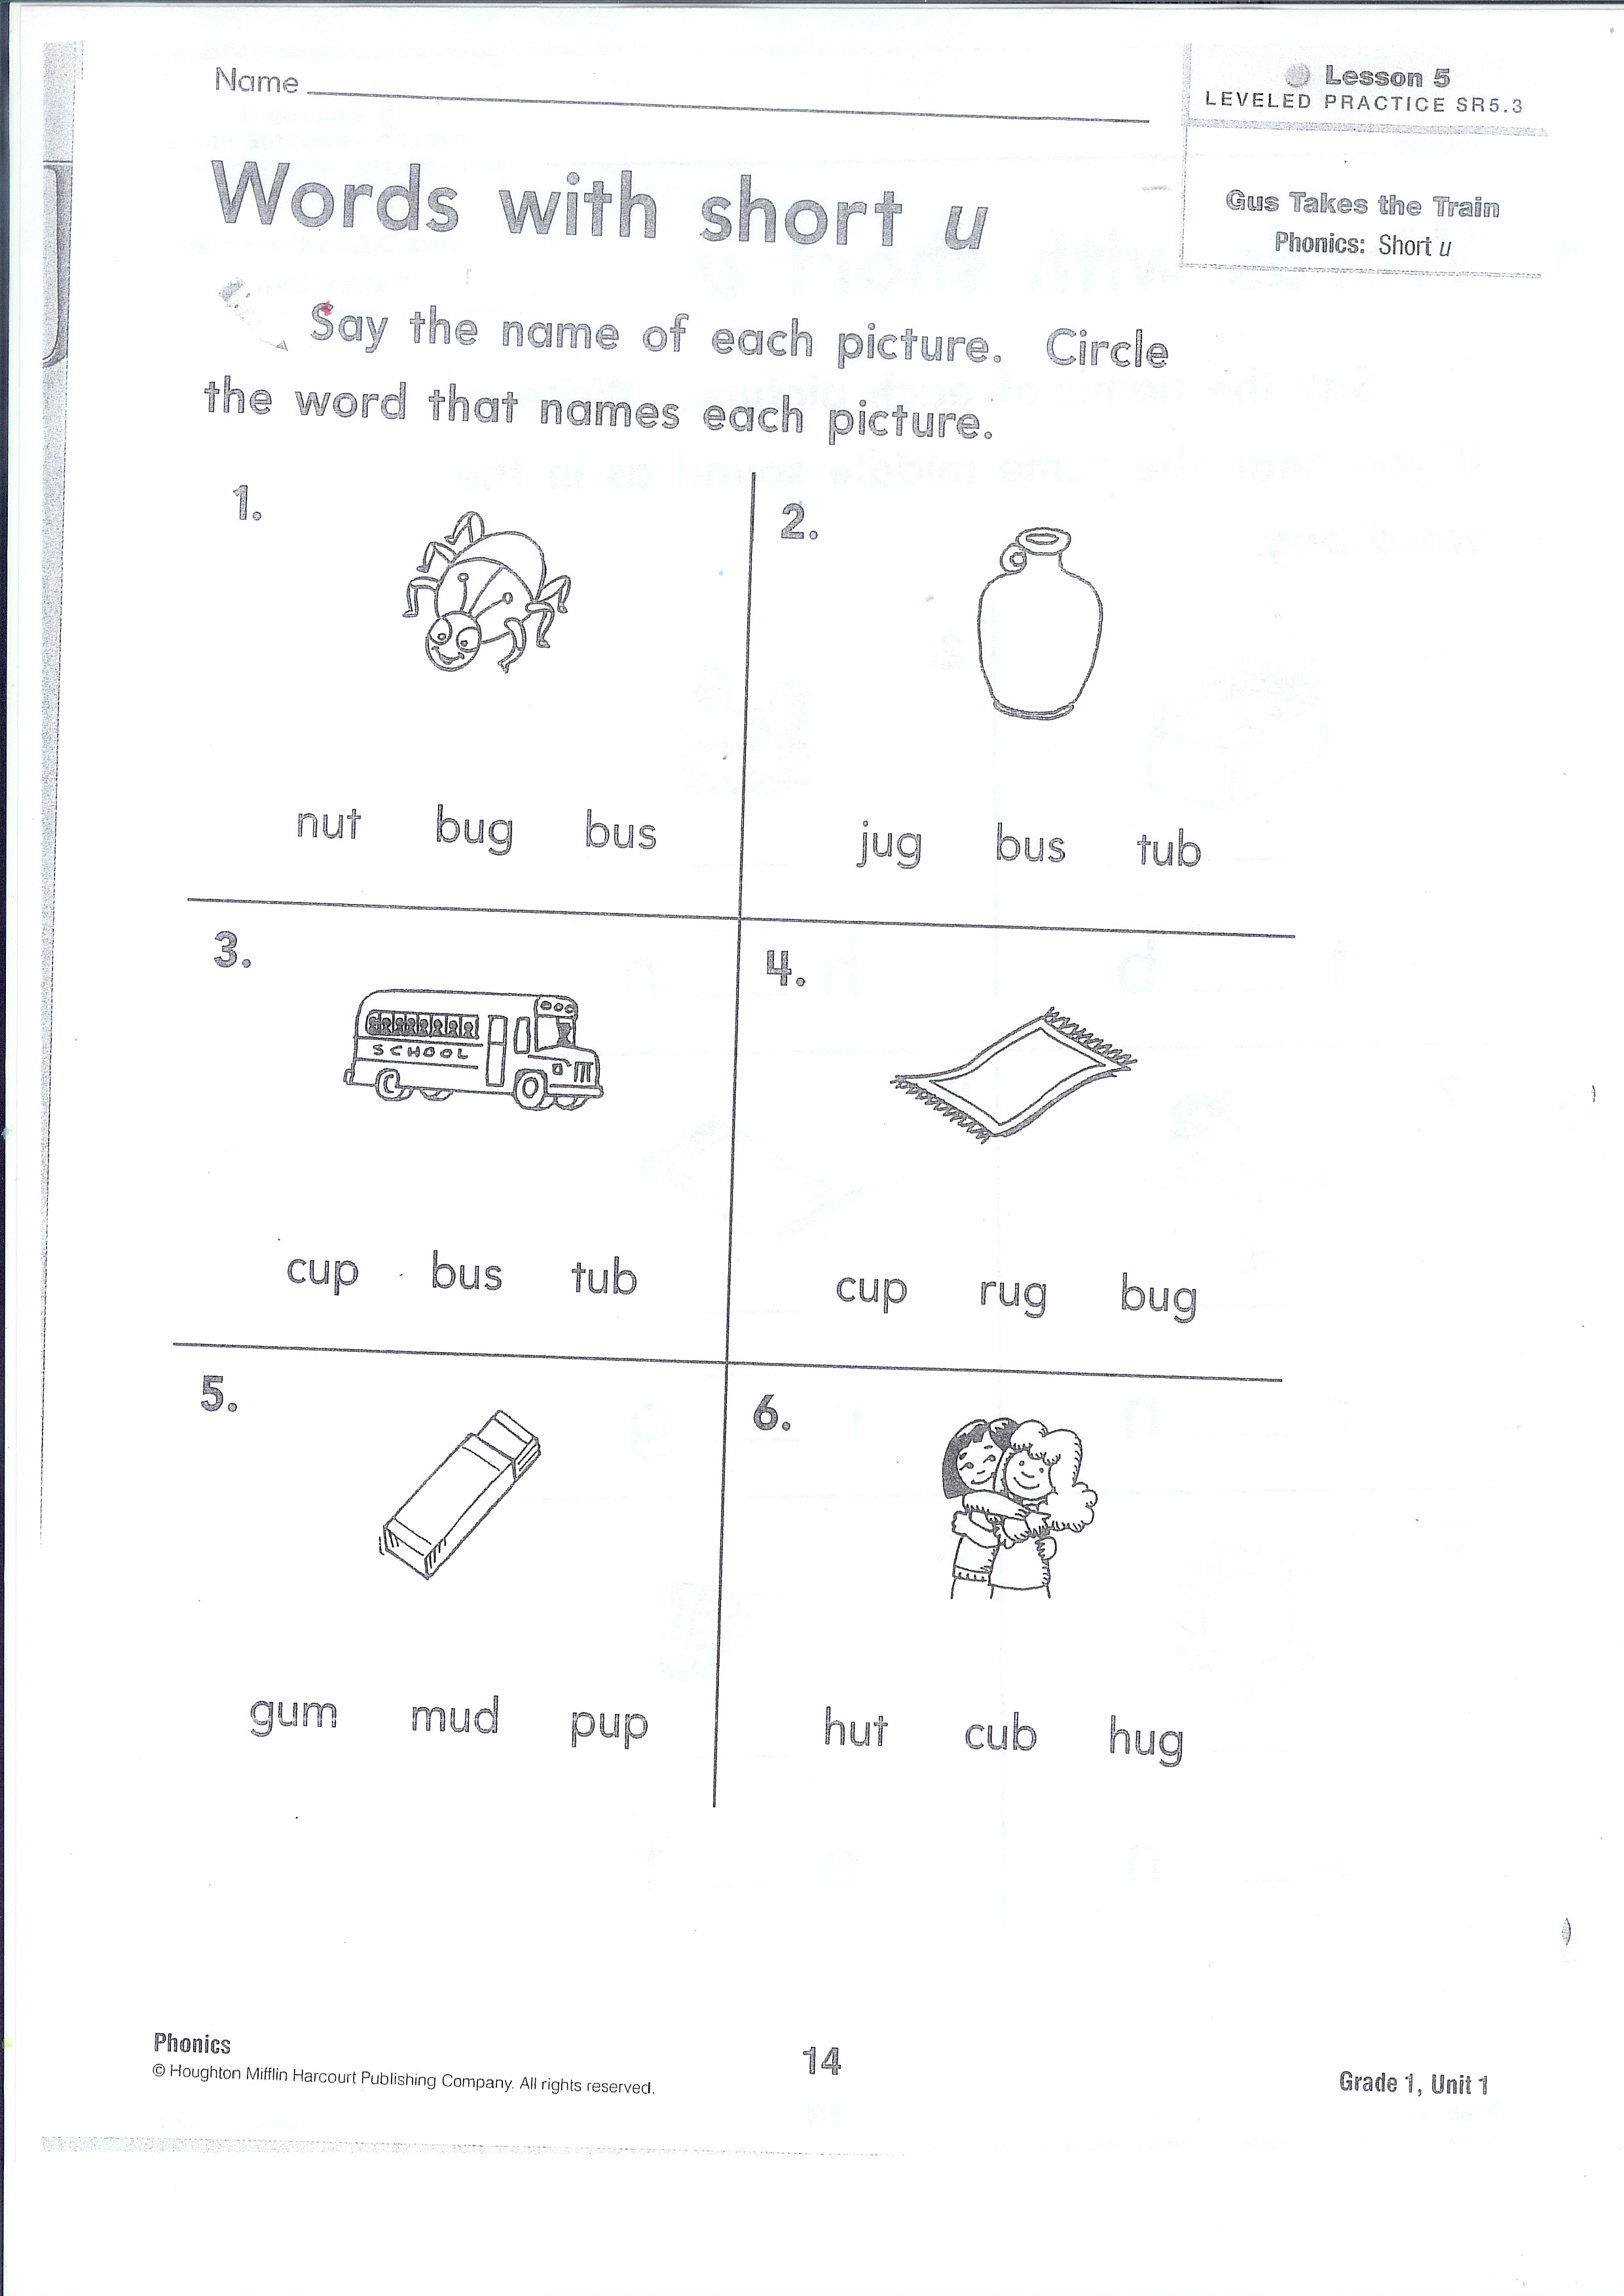 Math homework handout – Did You Hear About Math Worksheet